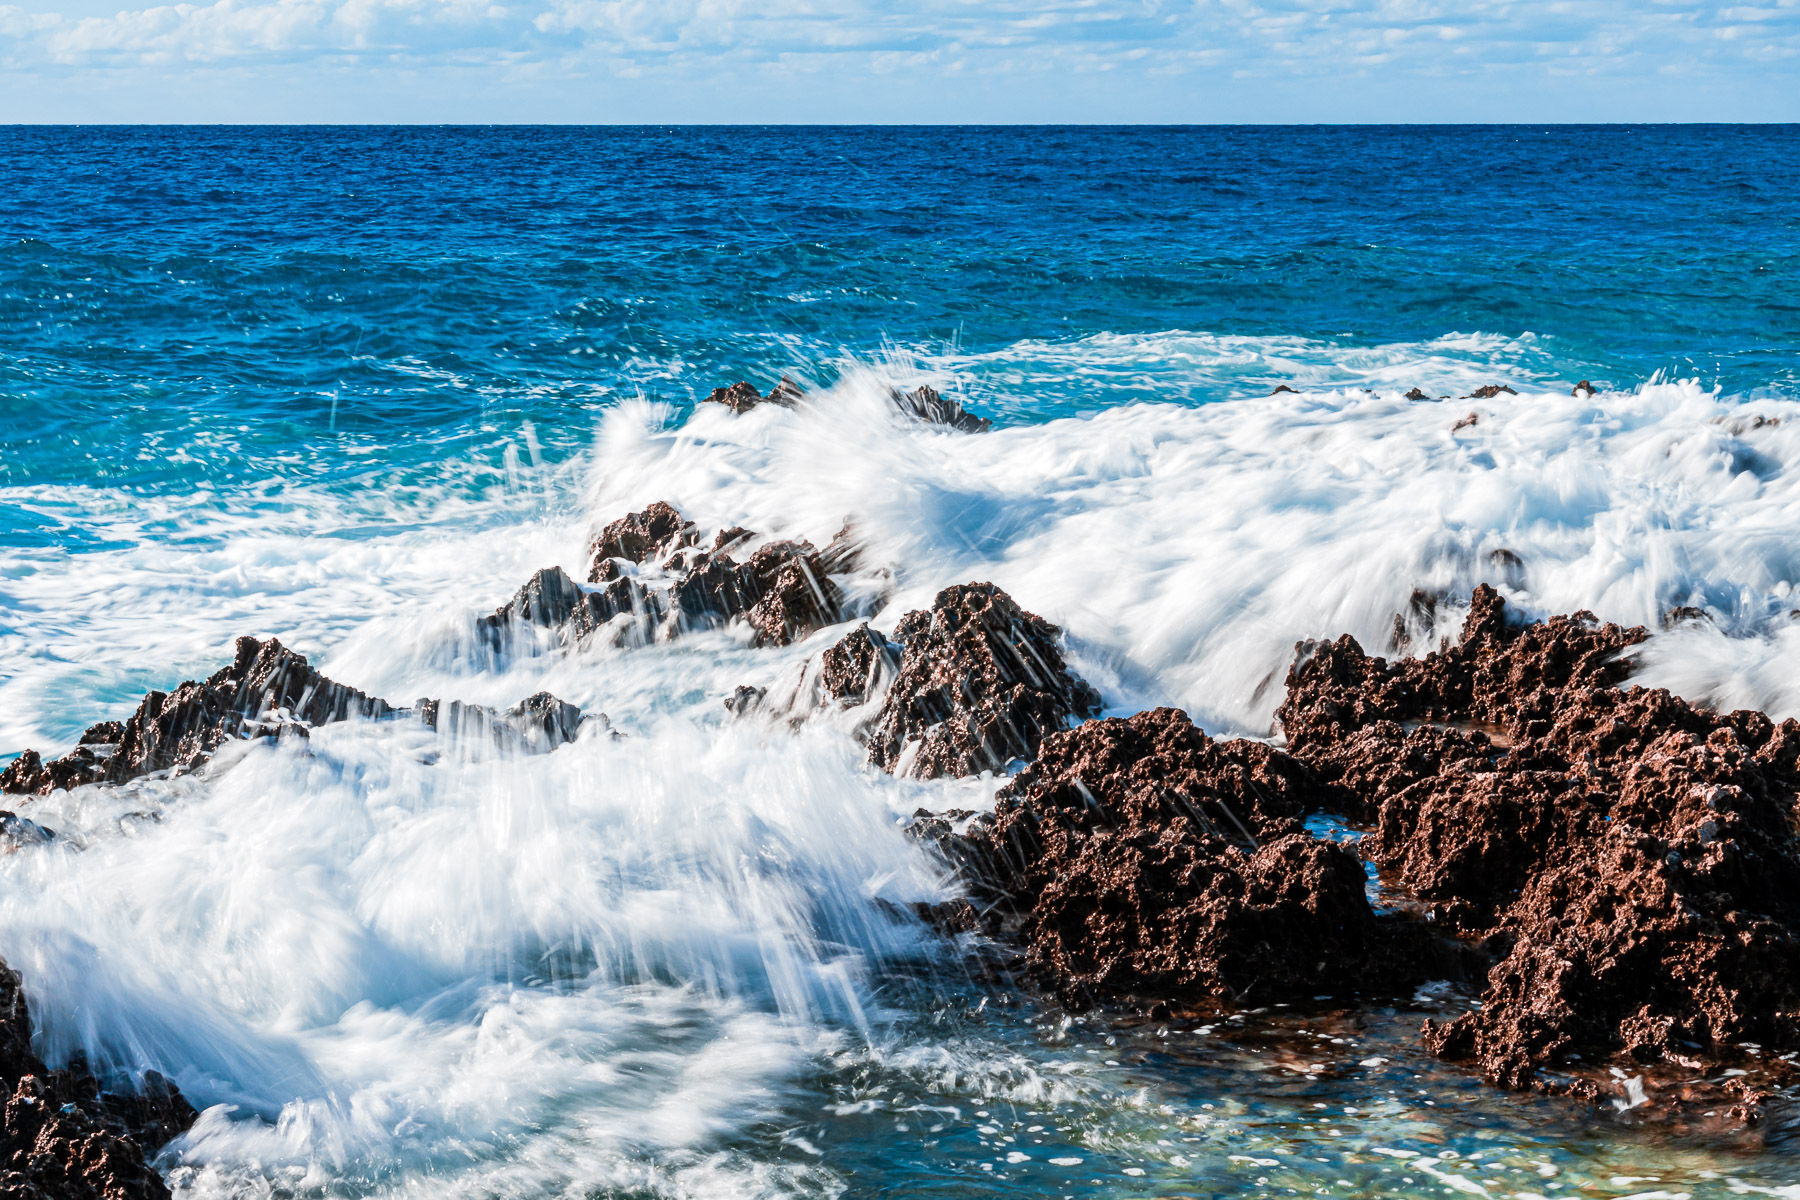 Waves splash over rocks at Turtle Reef, Grand Cayman.